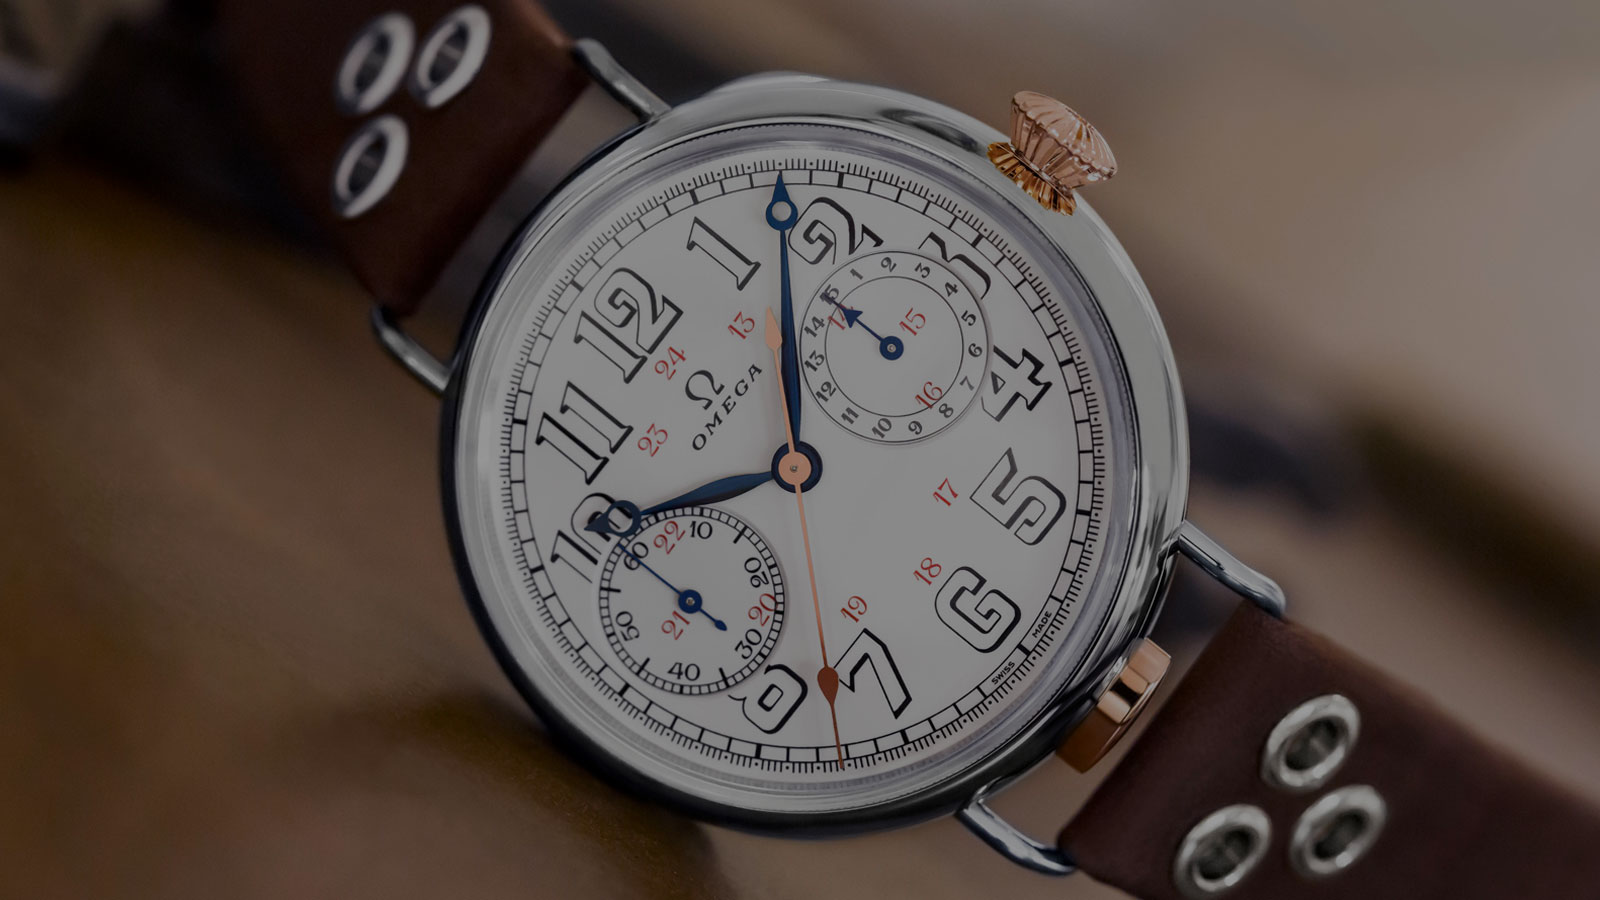 Colección Specialities First OMEGA Wrist-Chronograph - Video - 53962